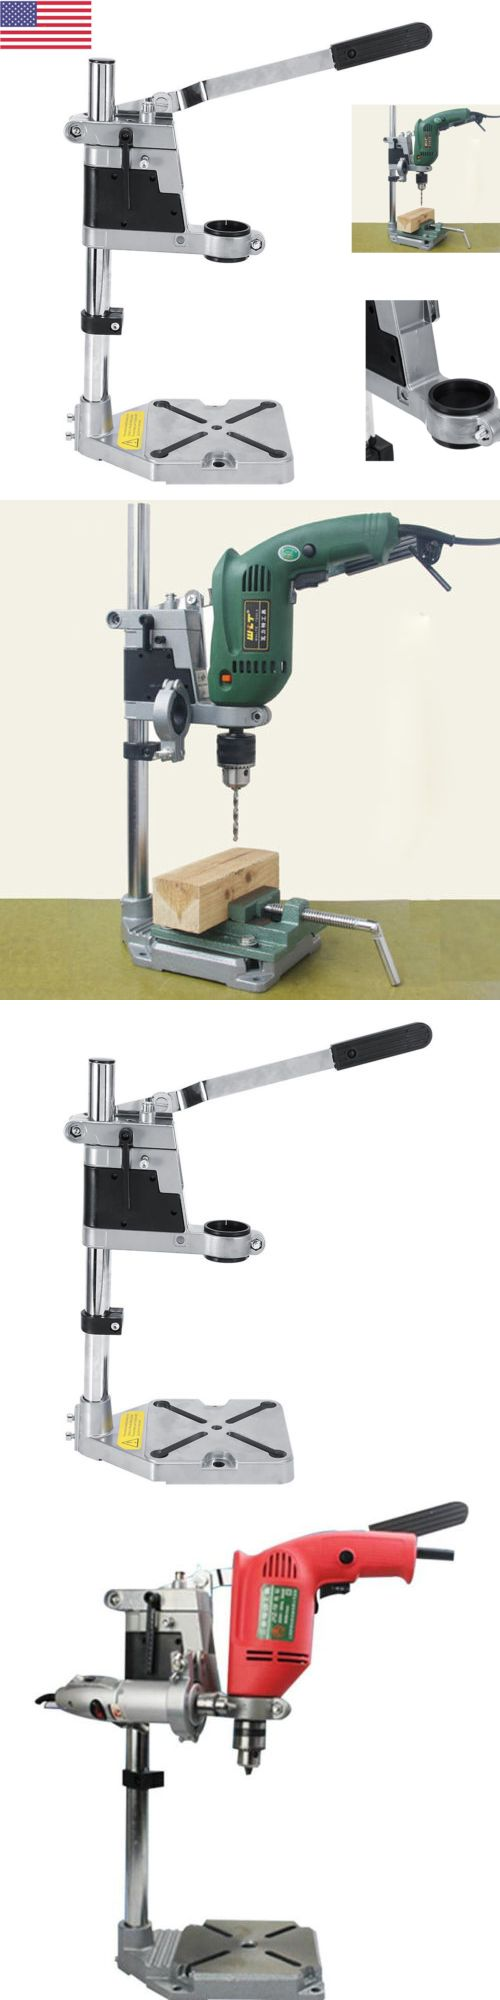 Drill Presses 71296 Electric Bench Drill Press Holder Grinder Bracket Table Stand Clamp Repair Tool Buy Drill Press Stand Drill Press Bench Clamp